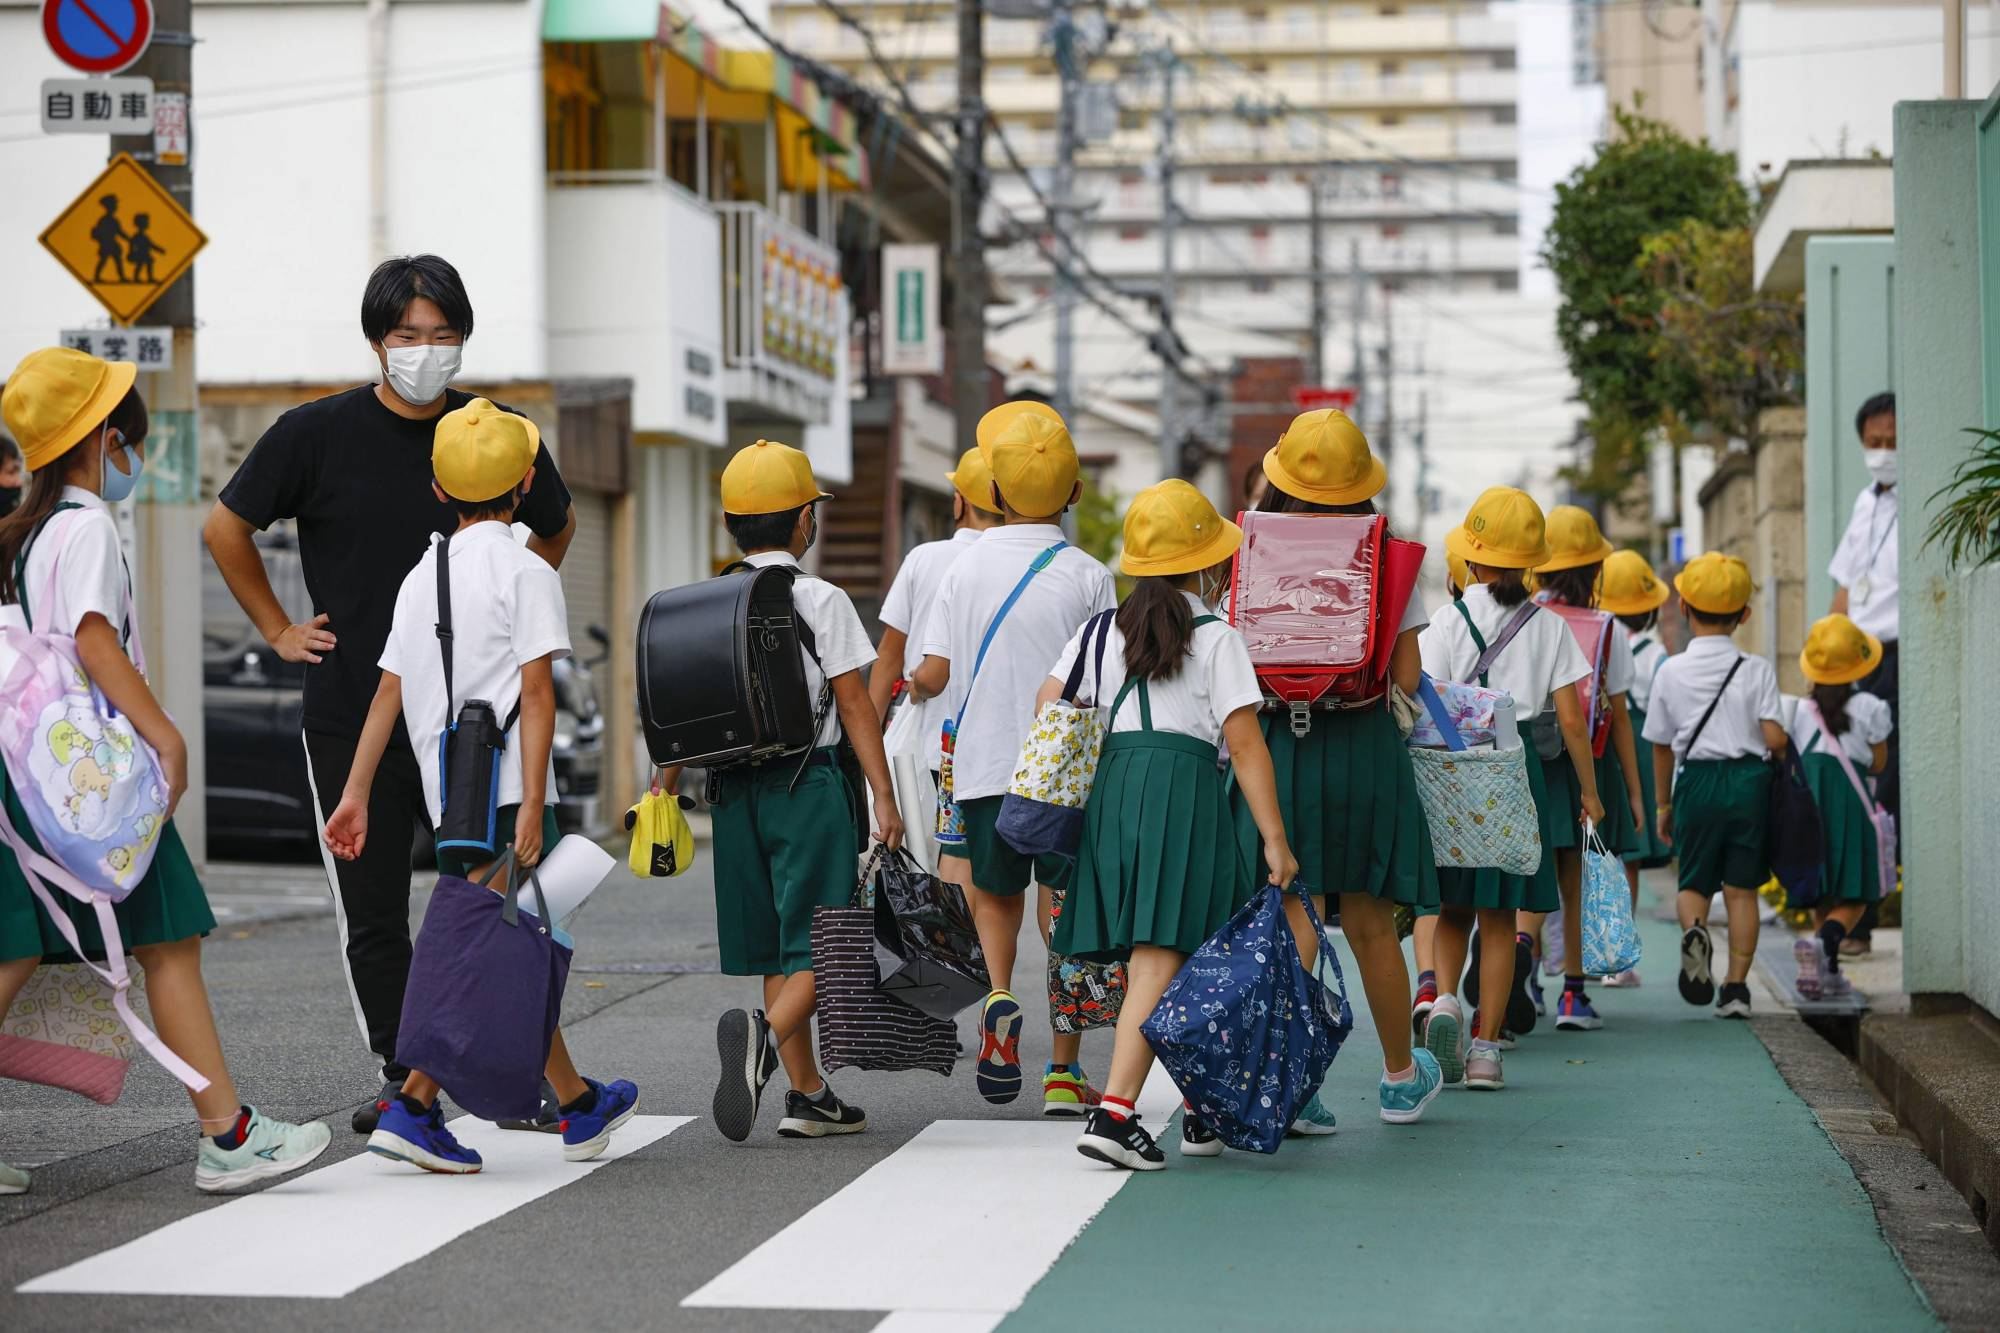 Students arrive at an elementary school in the city of Osaka on Aug. 25, the first day of the new semester.   KYODO